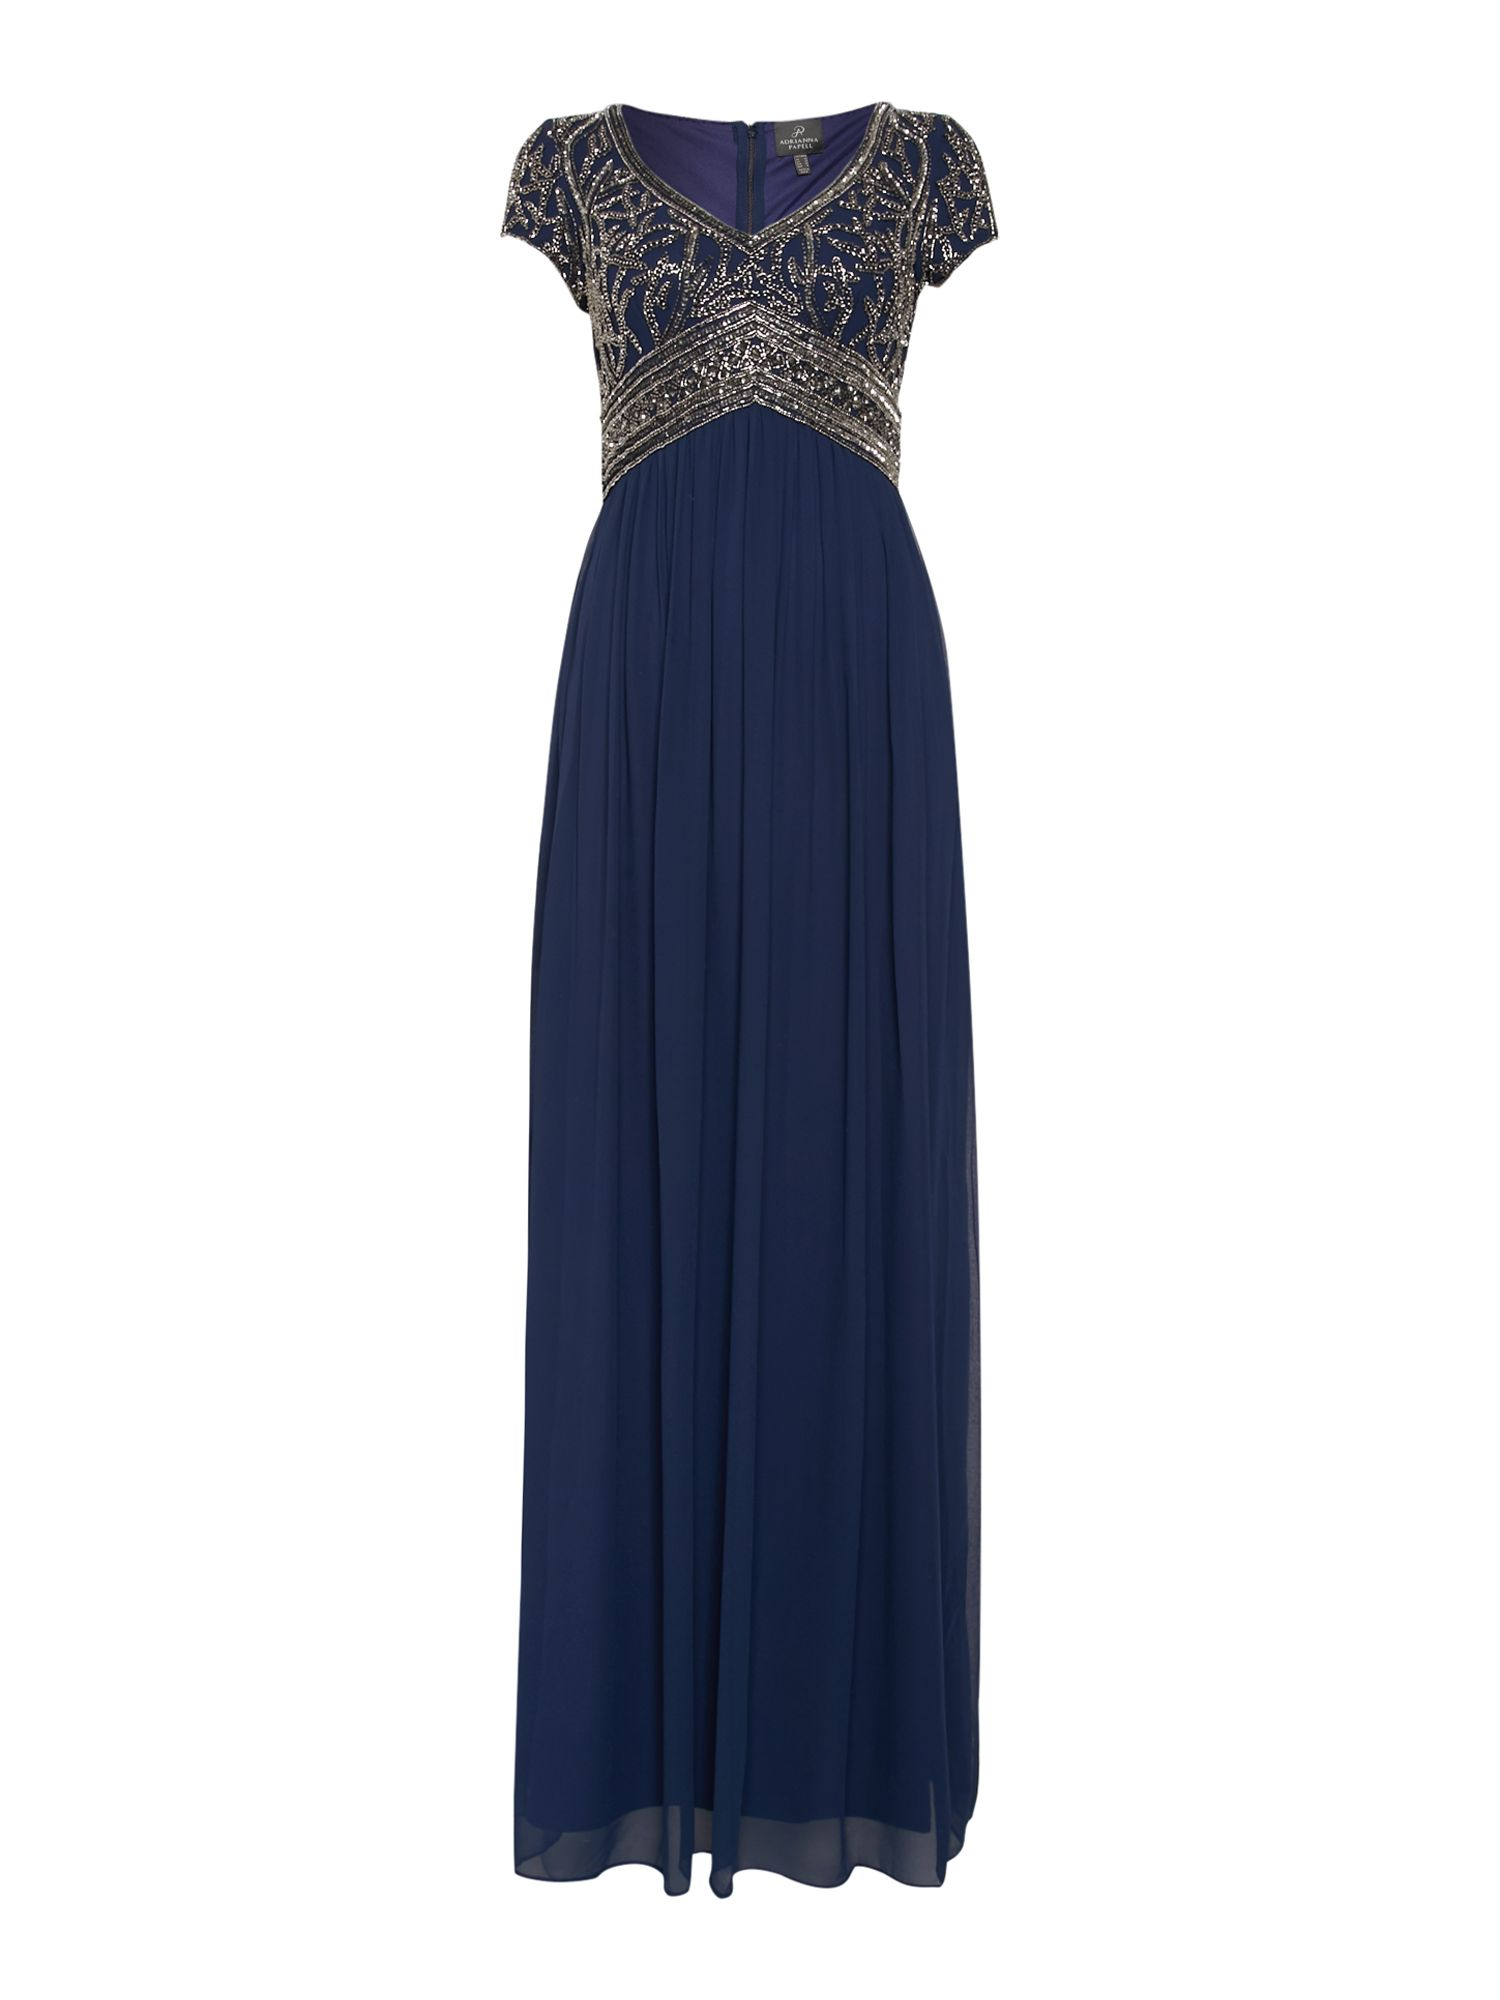 Adrianna Papell Empire waist gown with beaded top $170.00 AT vintagedancer.com